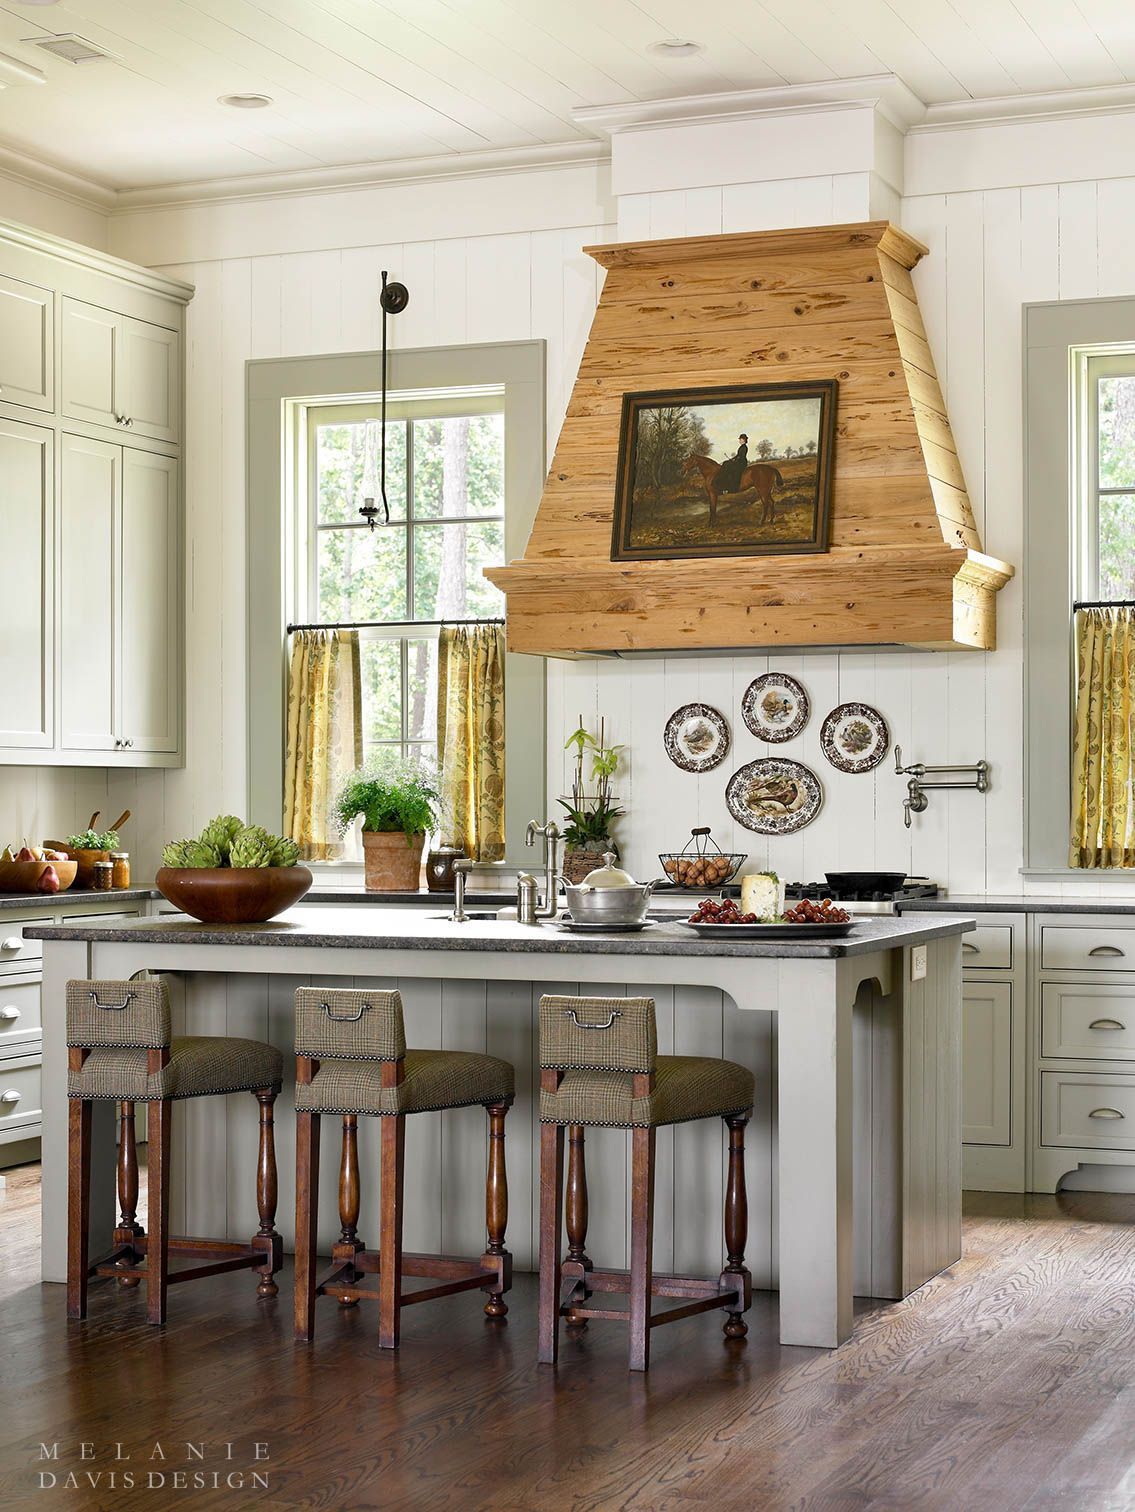 Custom Country Kitchen home interior design — country kitchen with shiplap walls and a